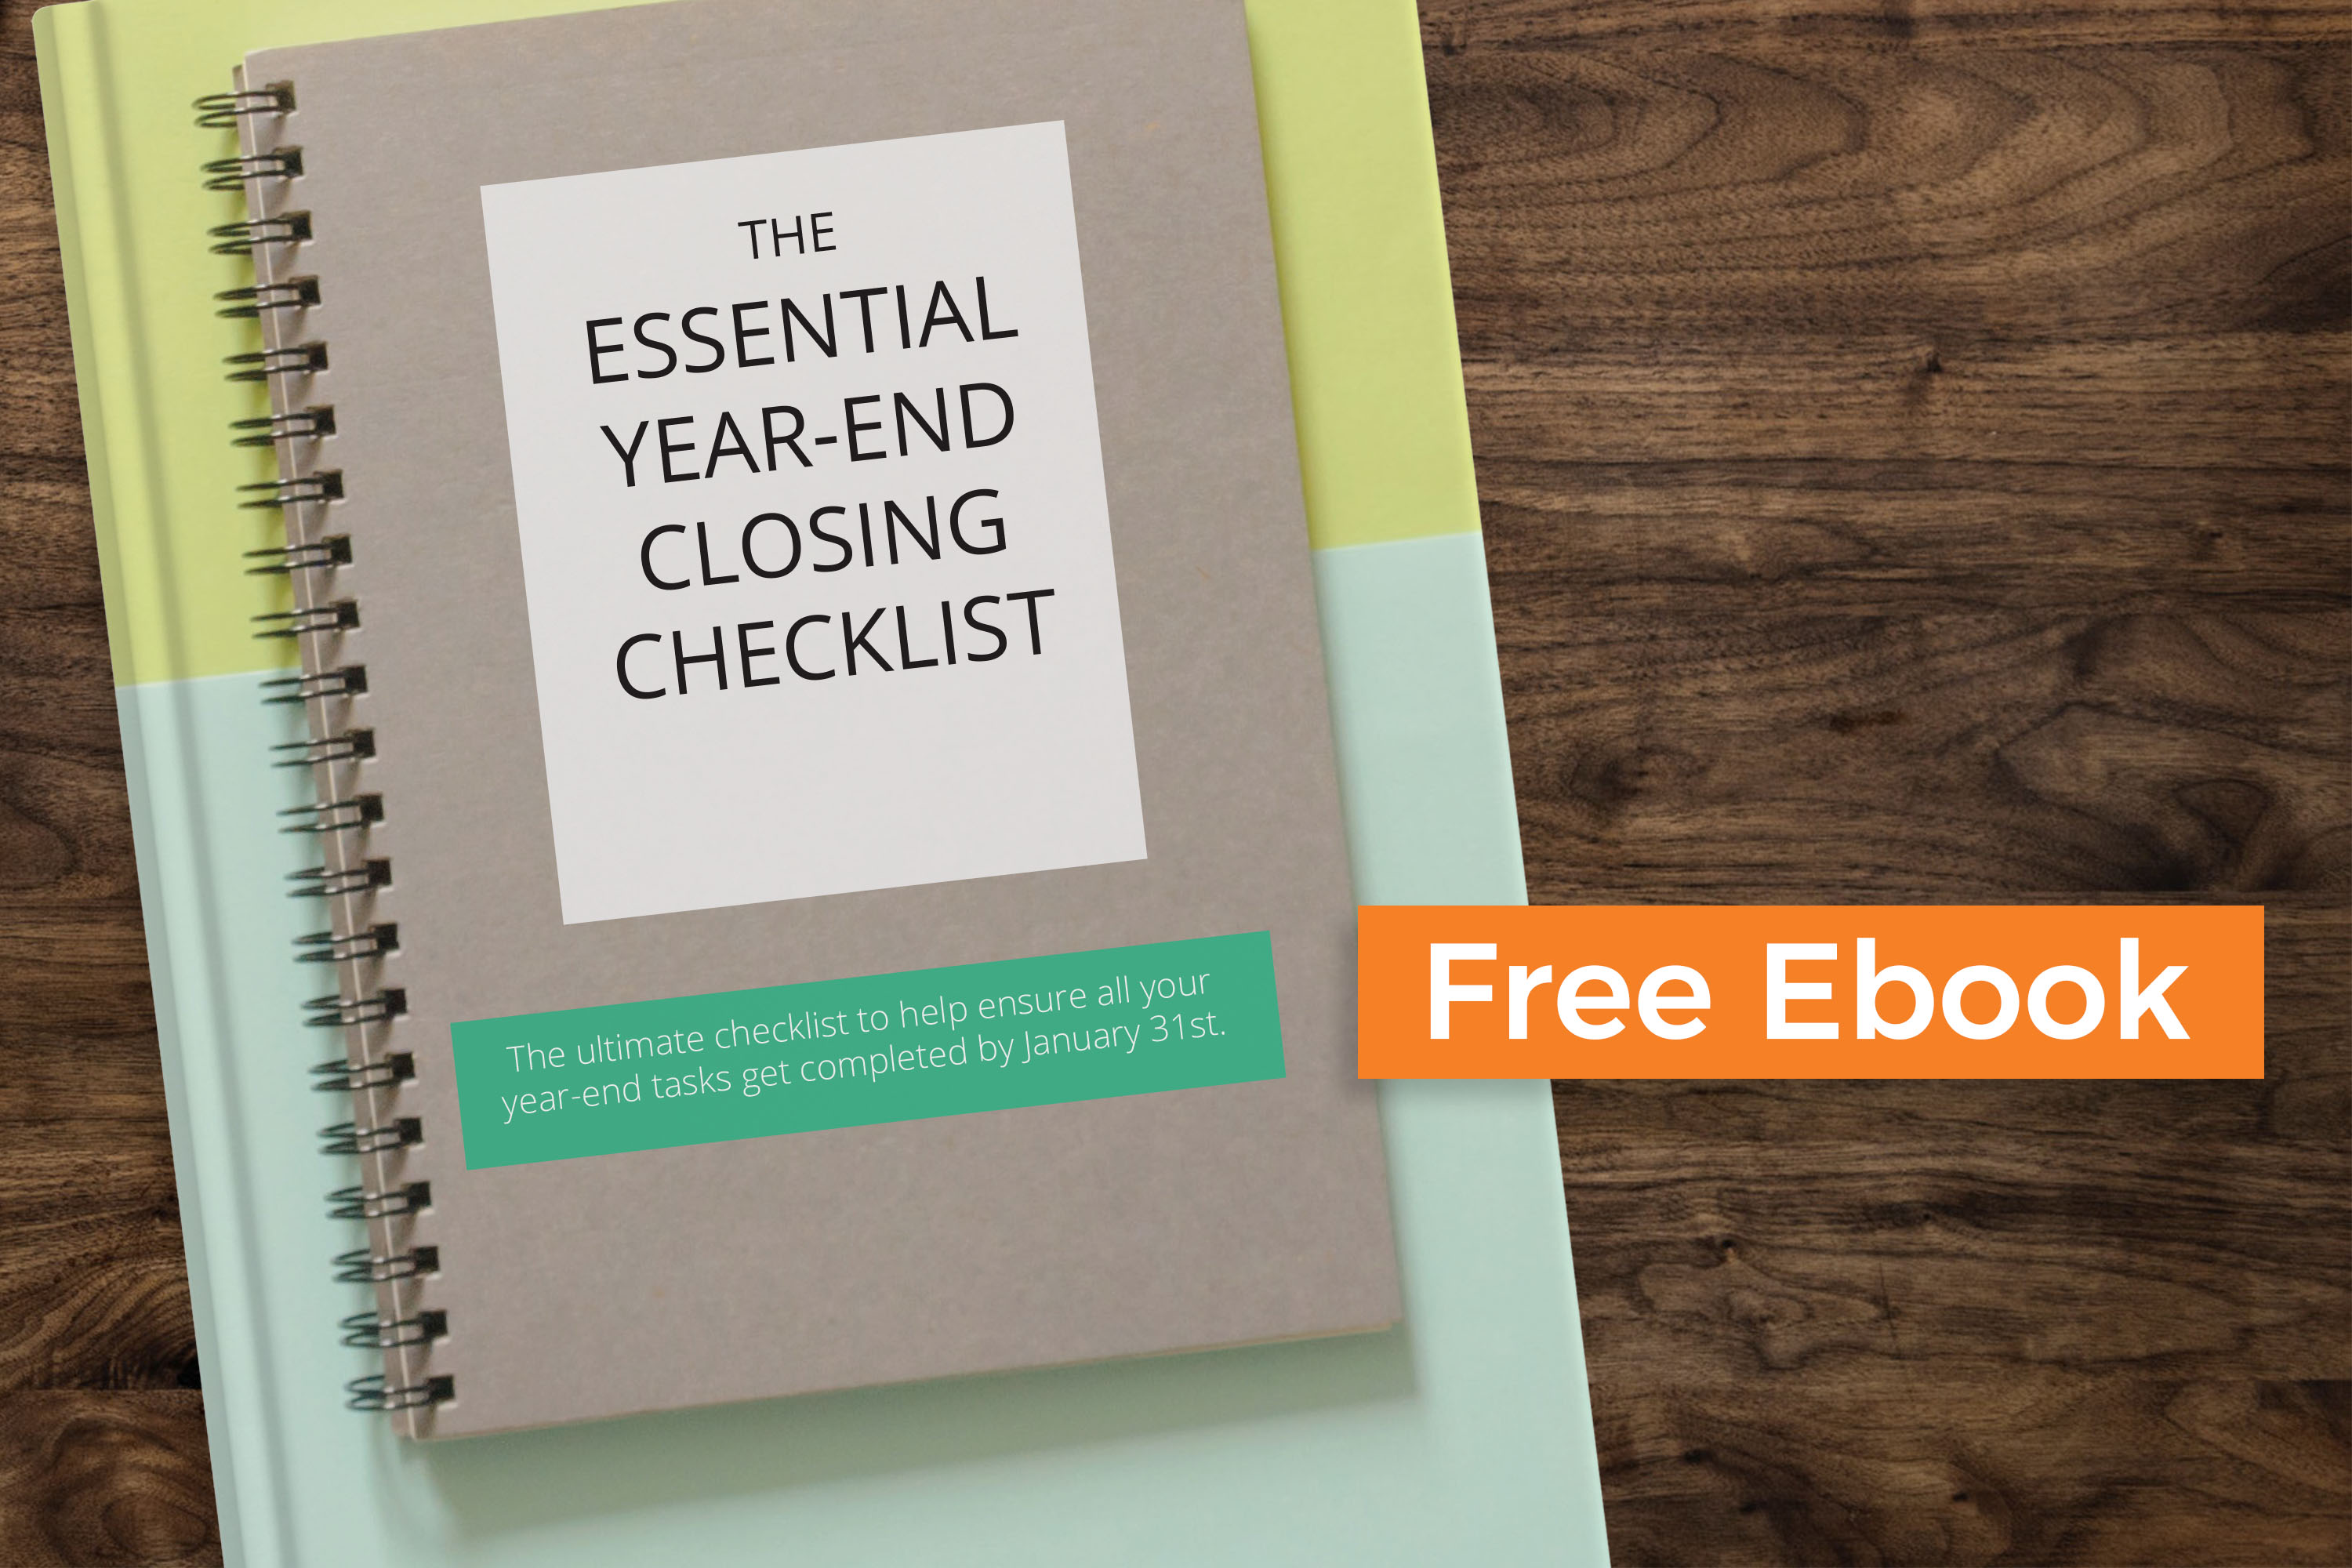 Free eBook: The Essential Year-End Closing Checklist For Nonprofits & Churches